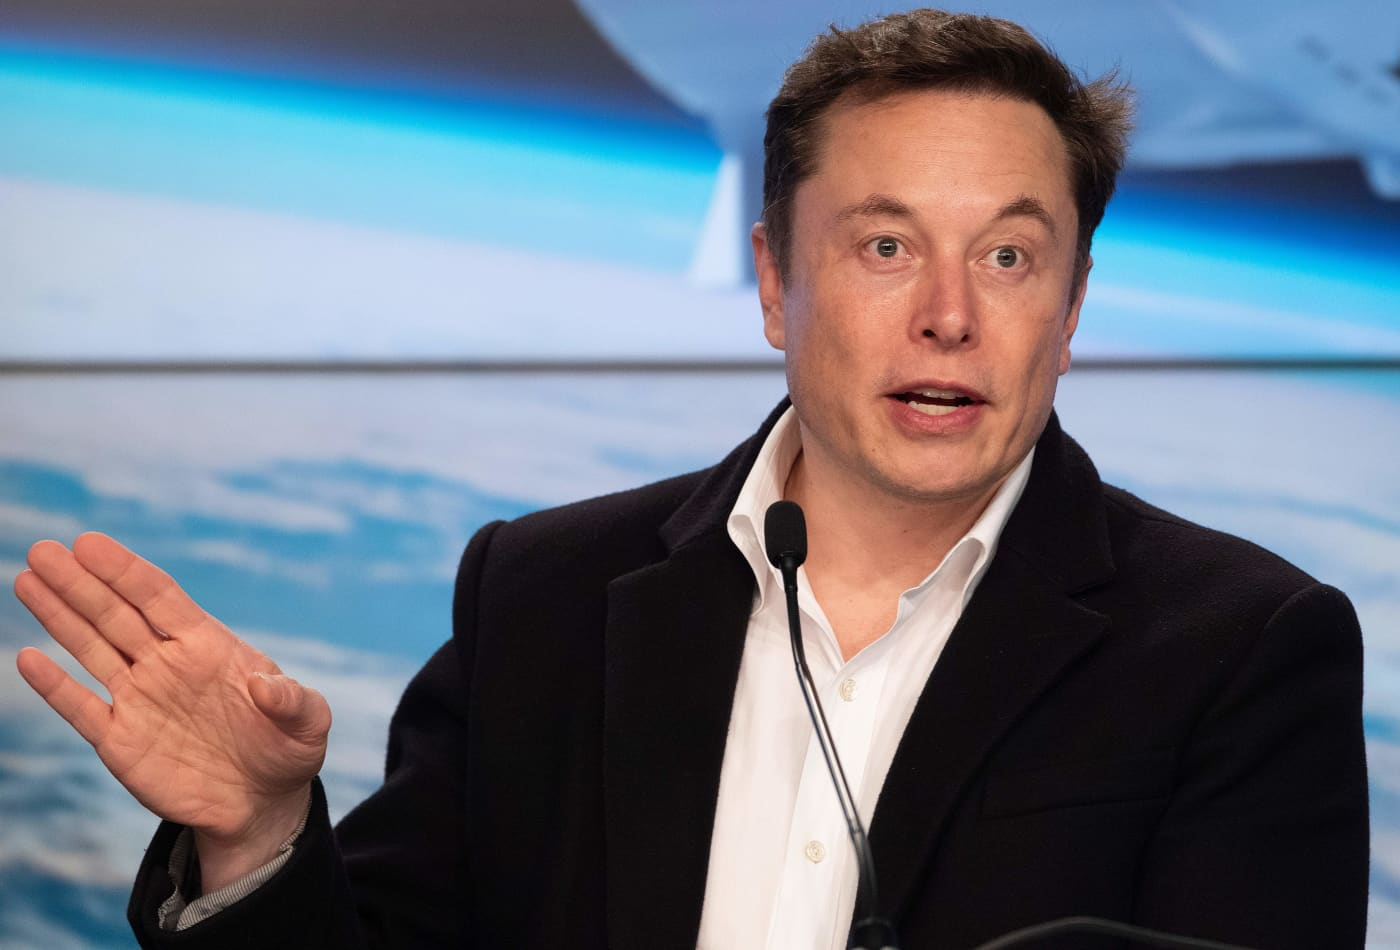 Elon Musk blasts SpaceX competitor ULA as 'a complete waste of taxpayer money'